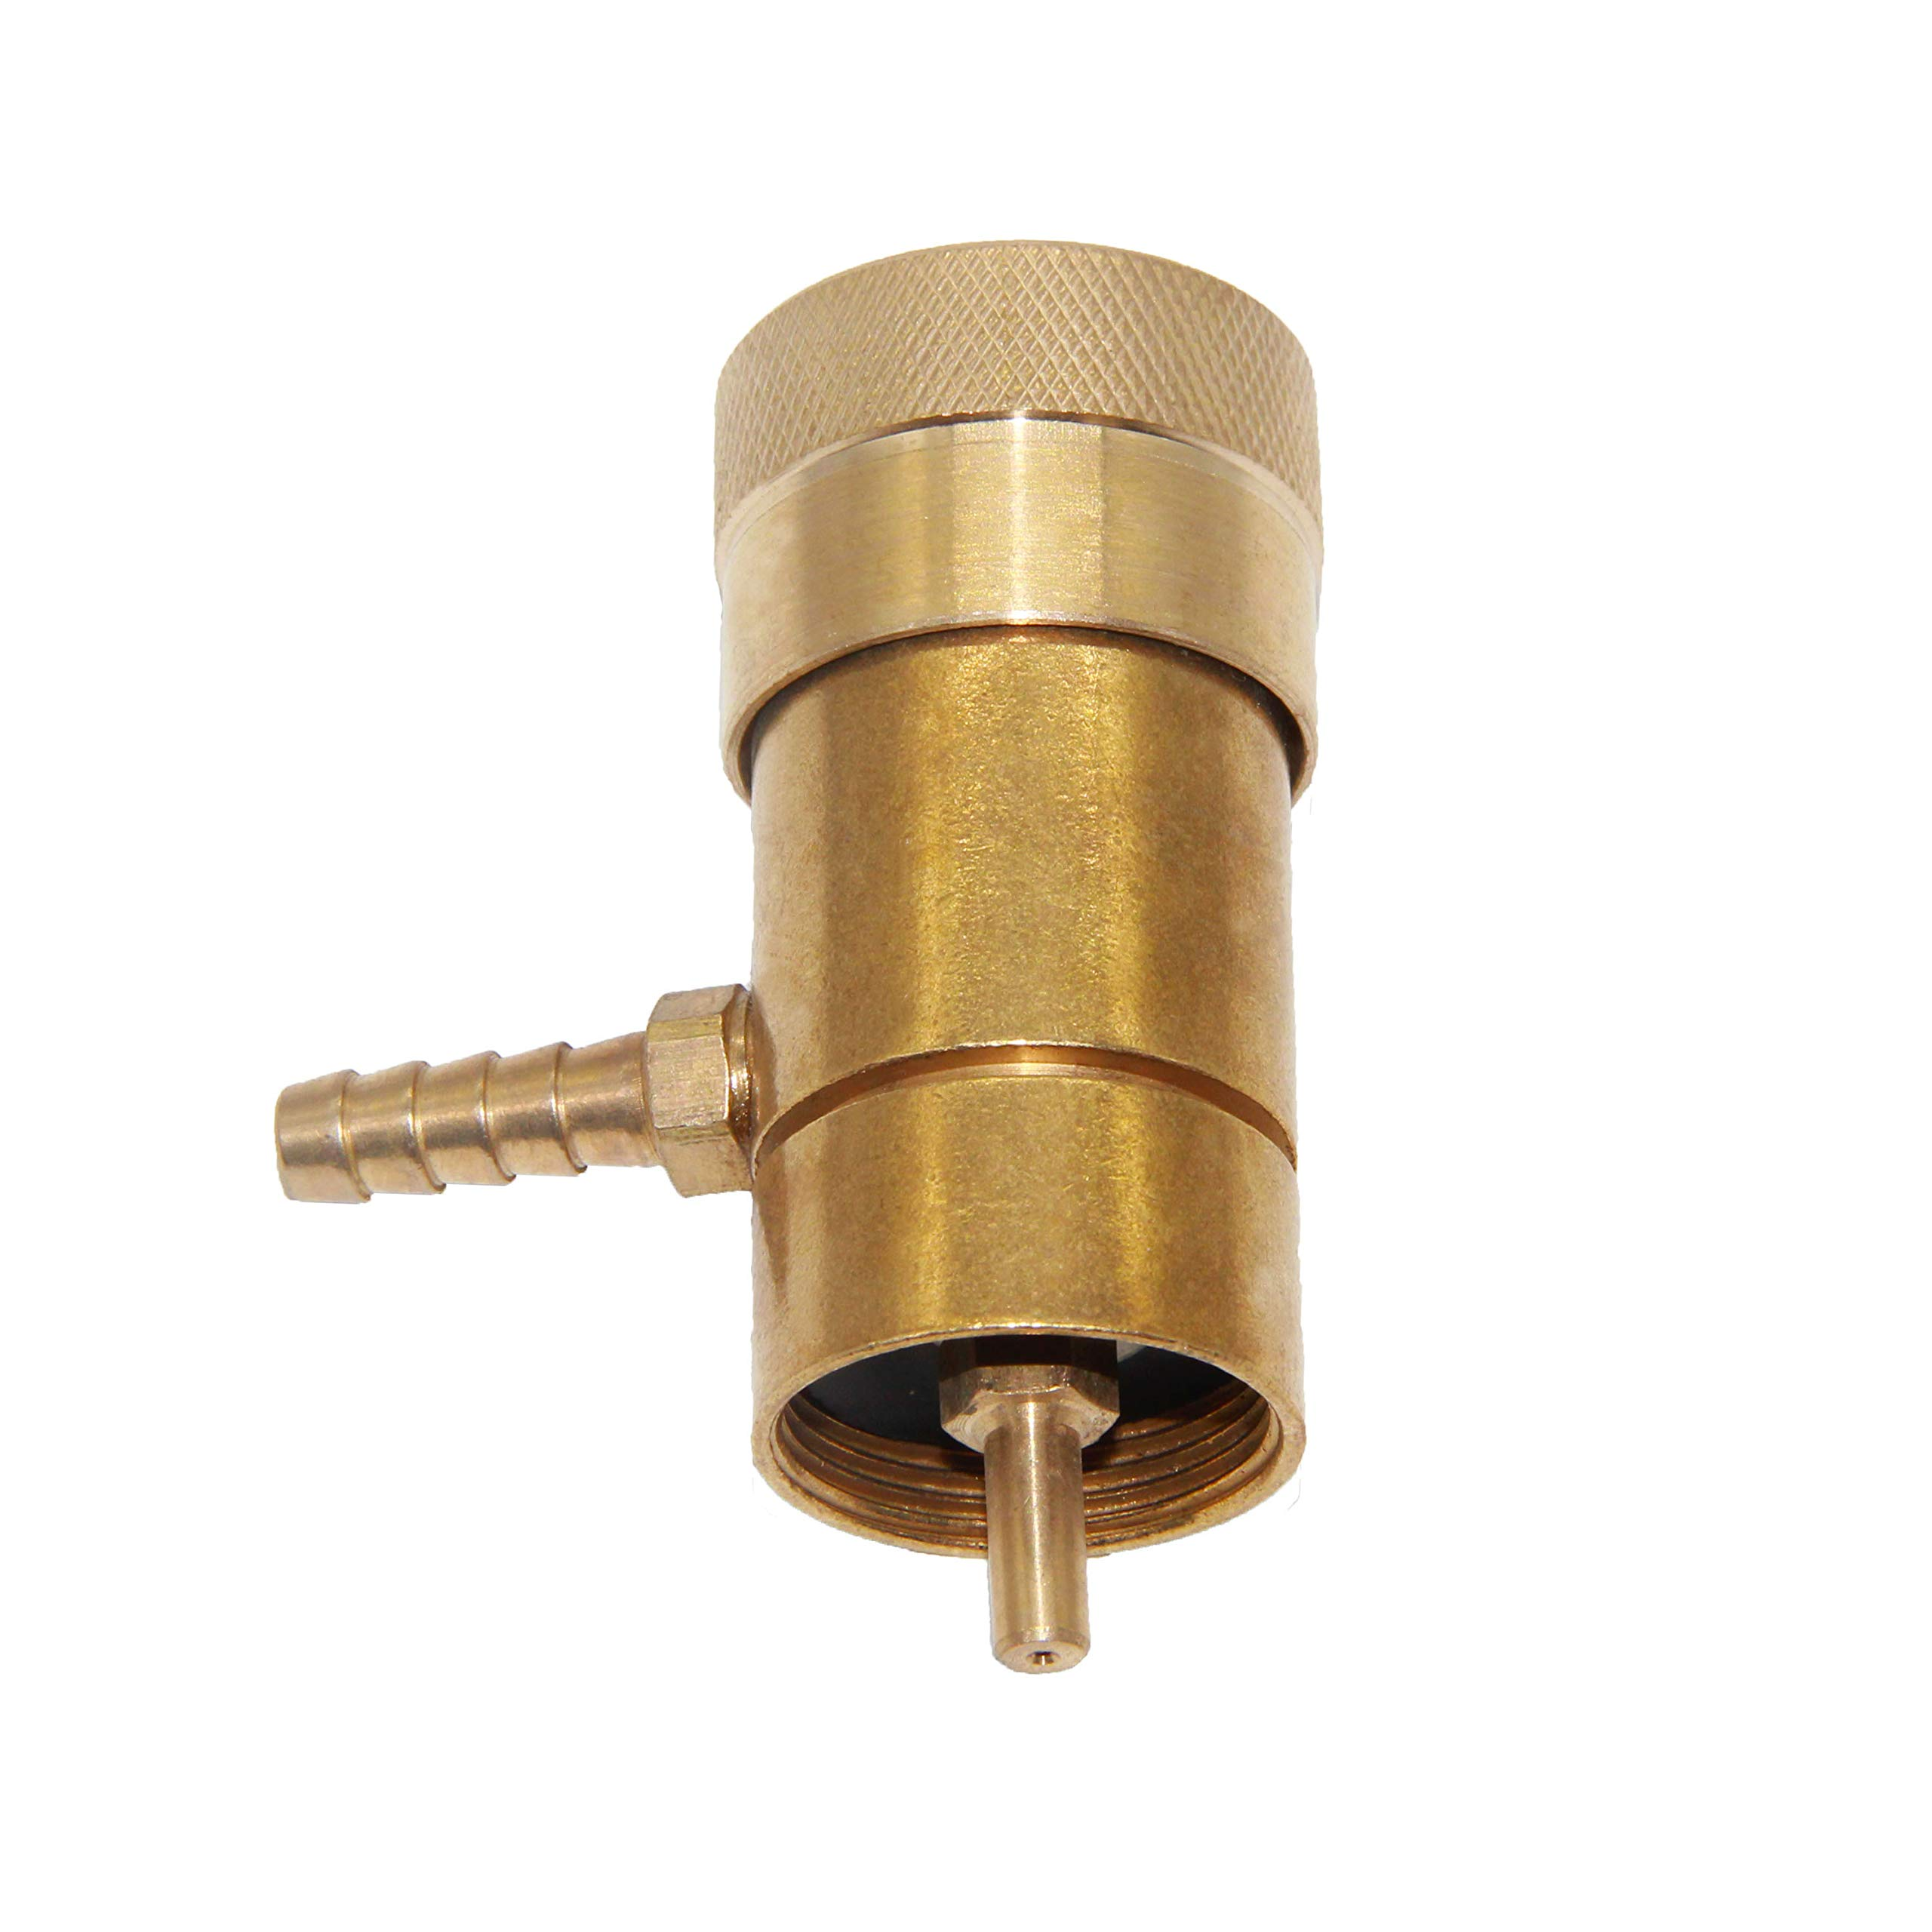 Joywayus Solid Brass Oxygen Regulator Tank Valve Fit Disposable Tanks with Barb Fitting by Joywayus